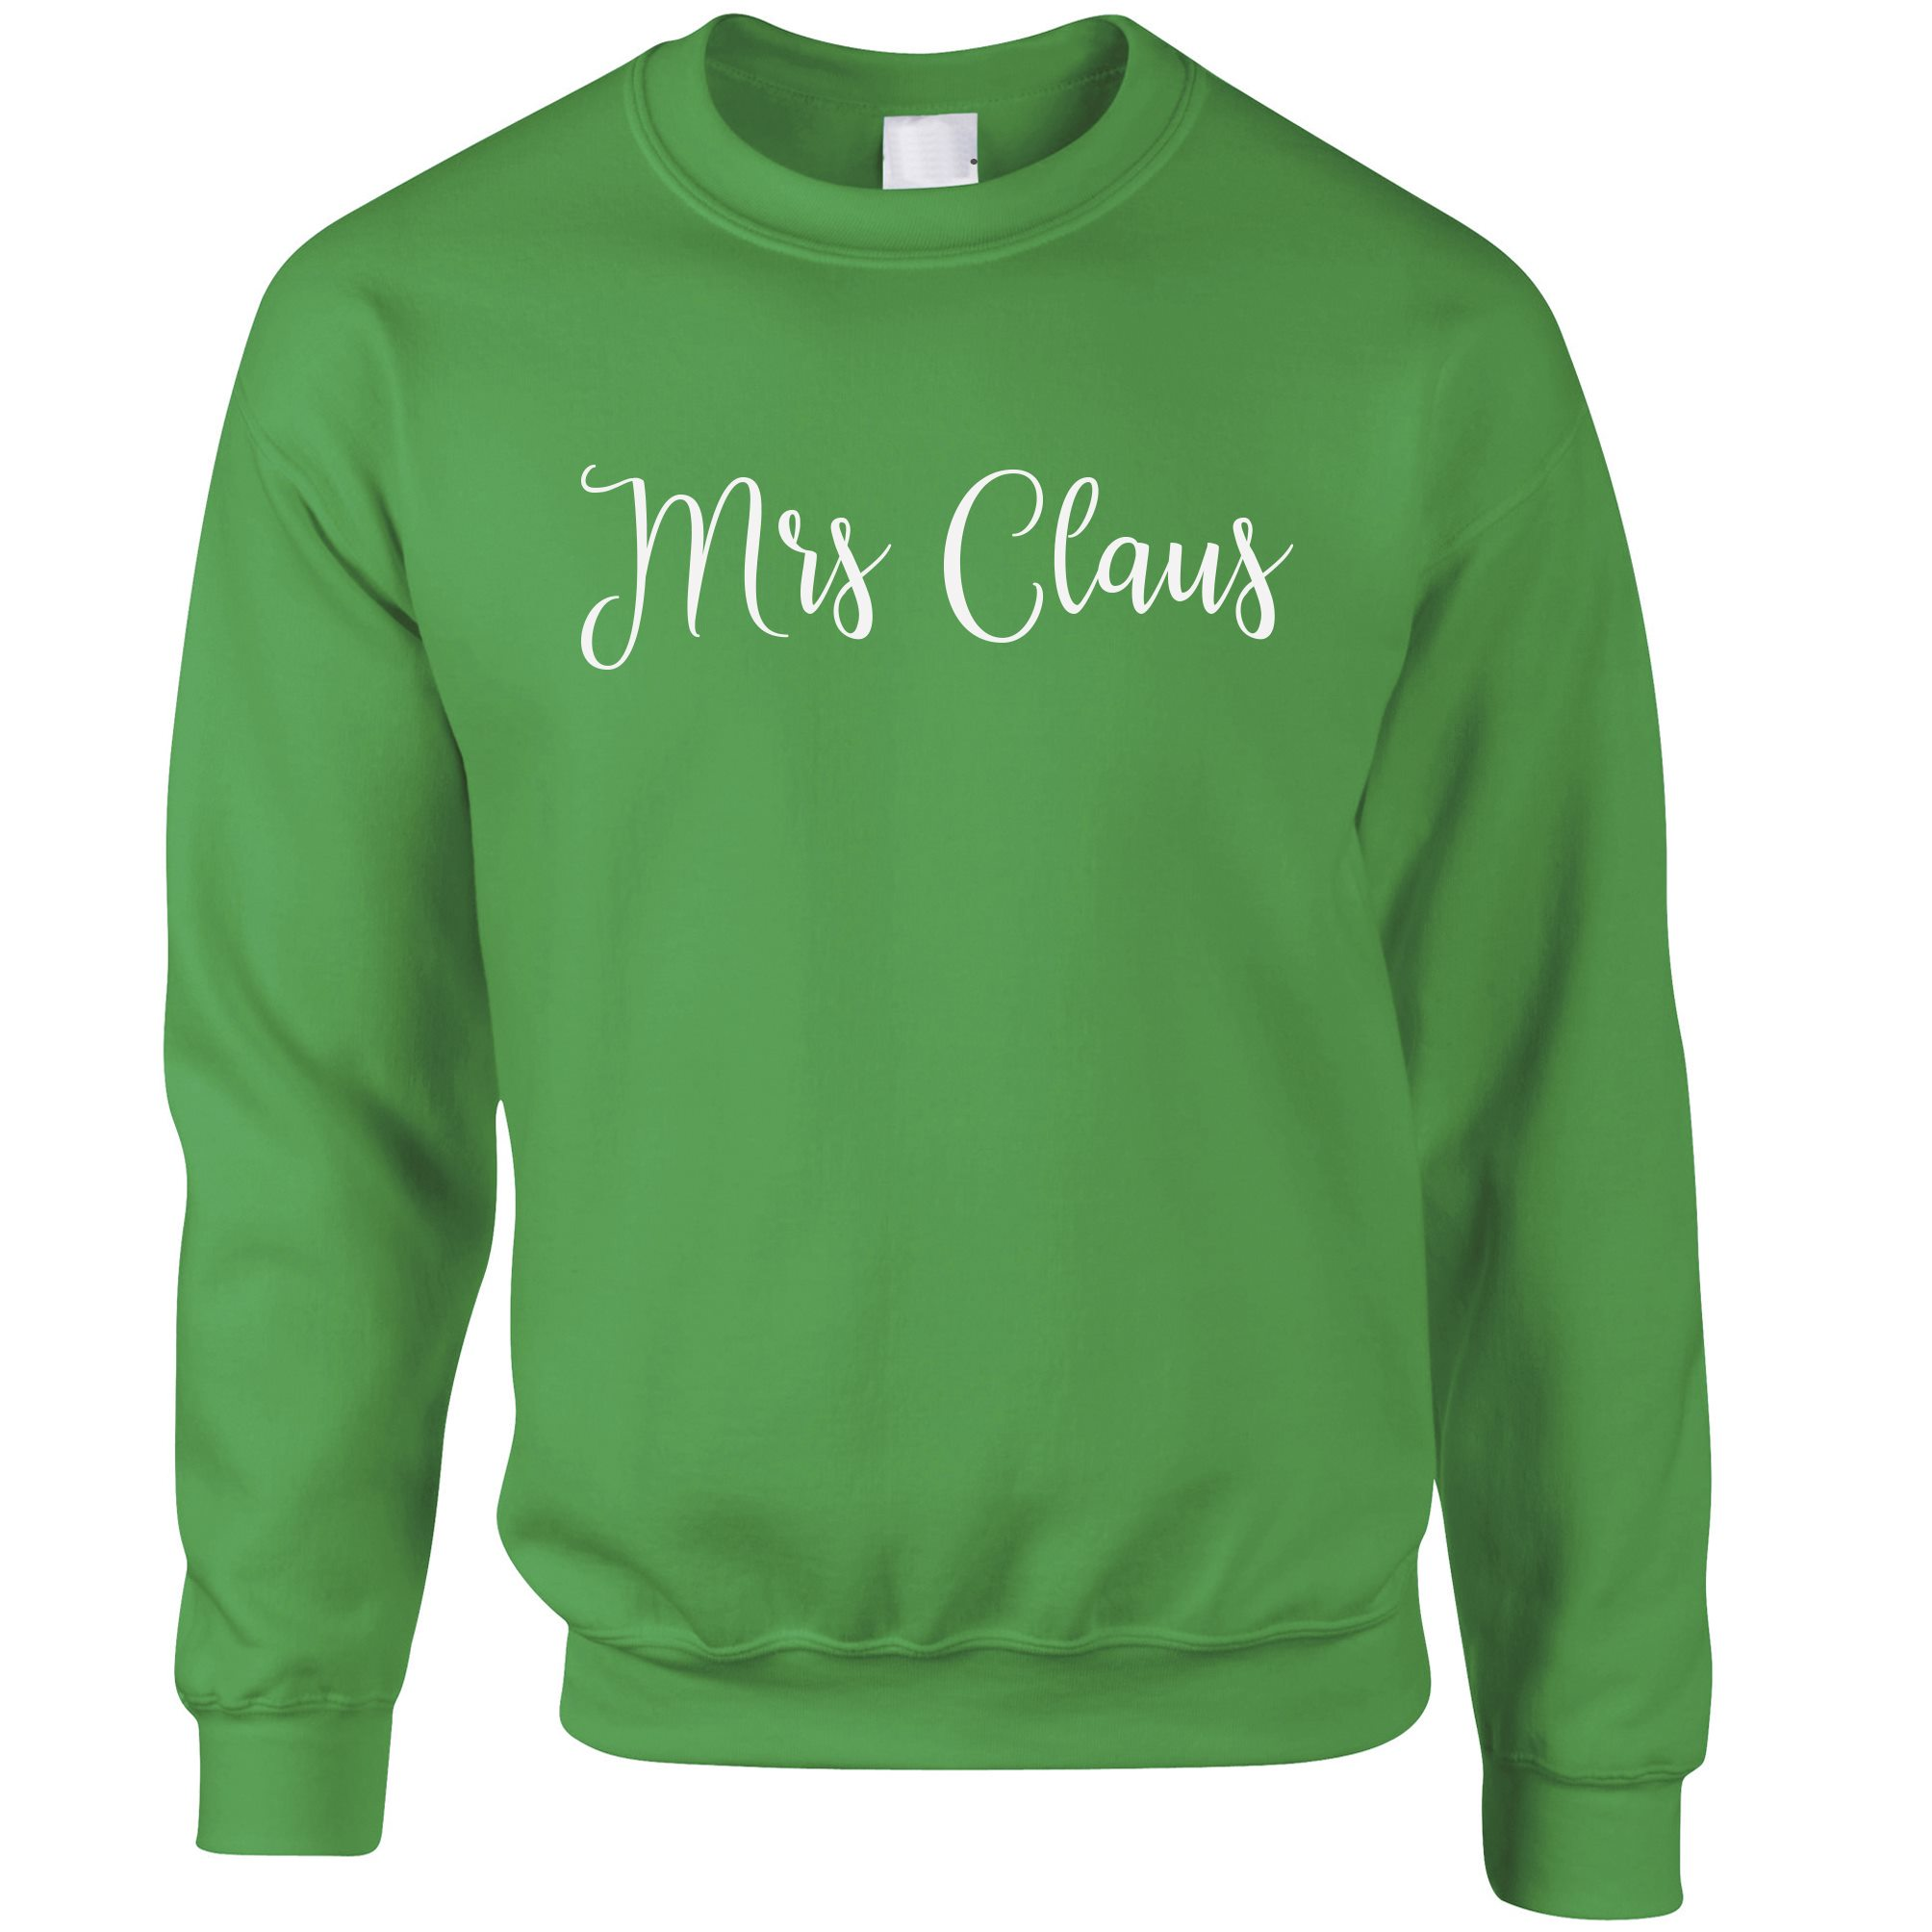 Novelty Christmas Jumper Mrs Claus Slogan Sweatshirt Sweater